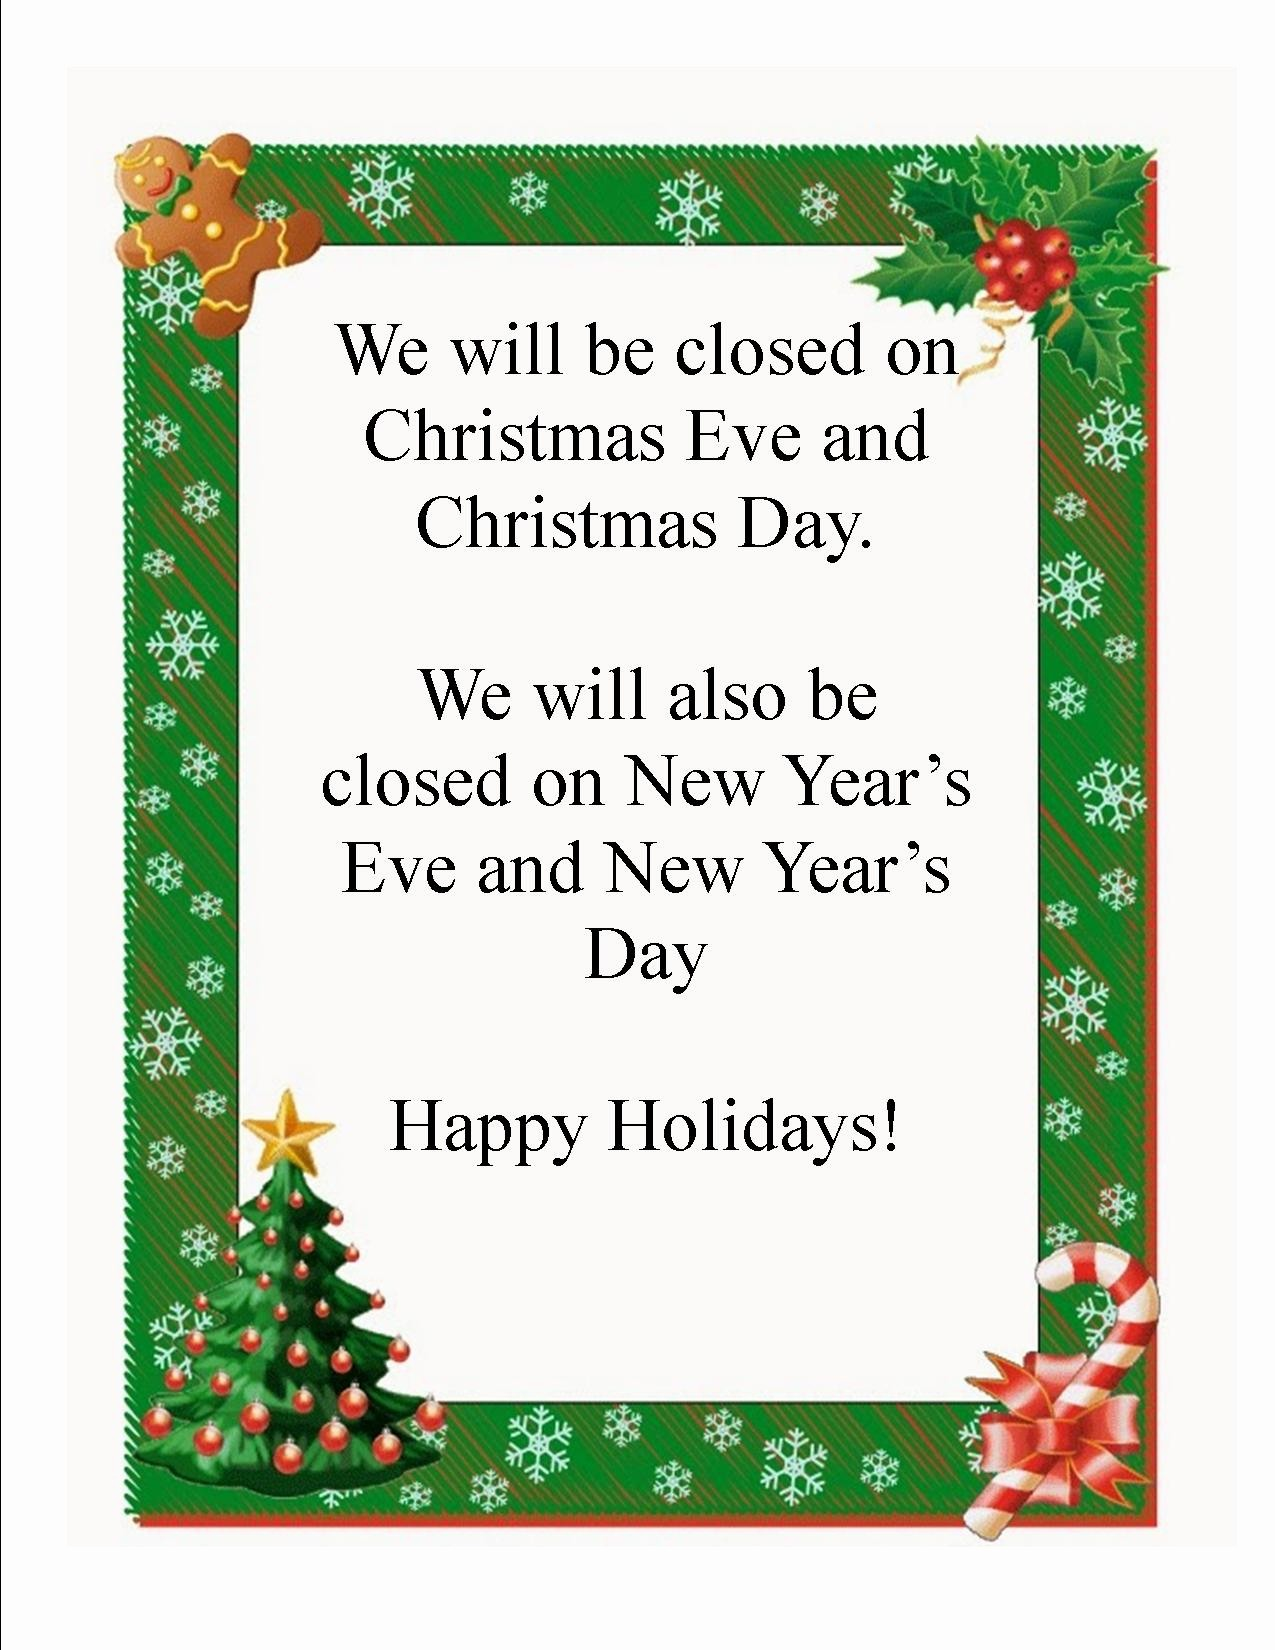 Office Closed for Holiday Sign Elegant Mayville Public Library